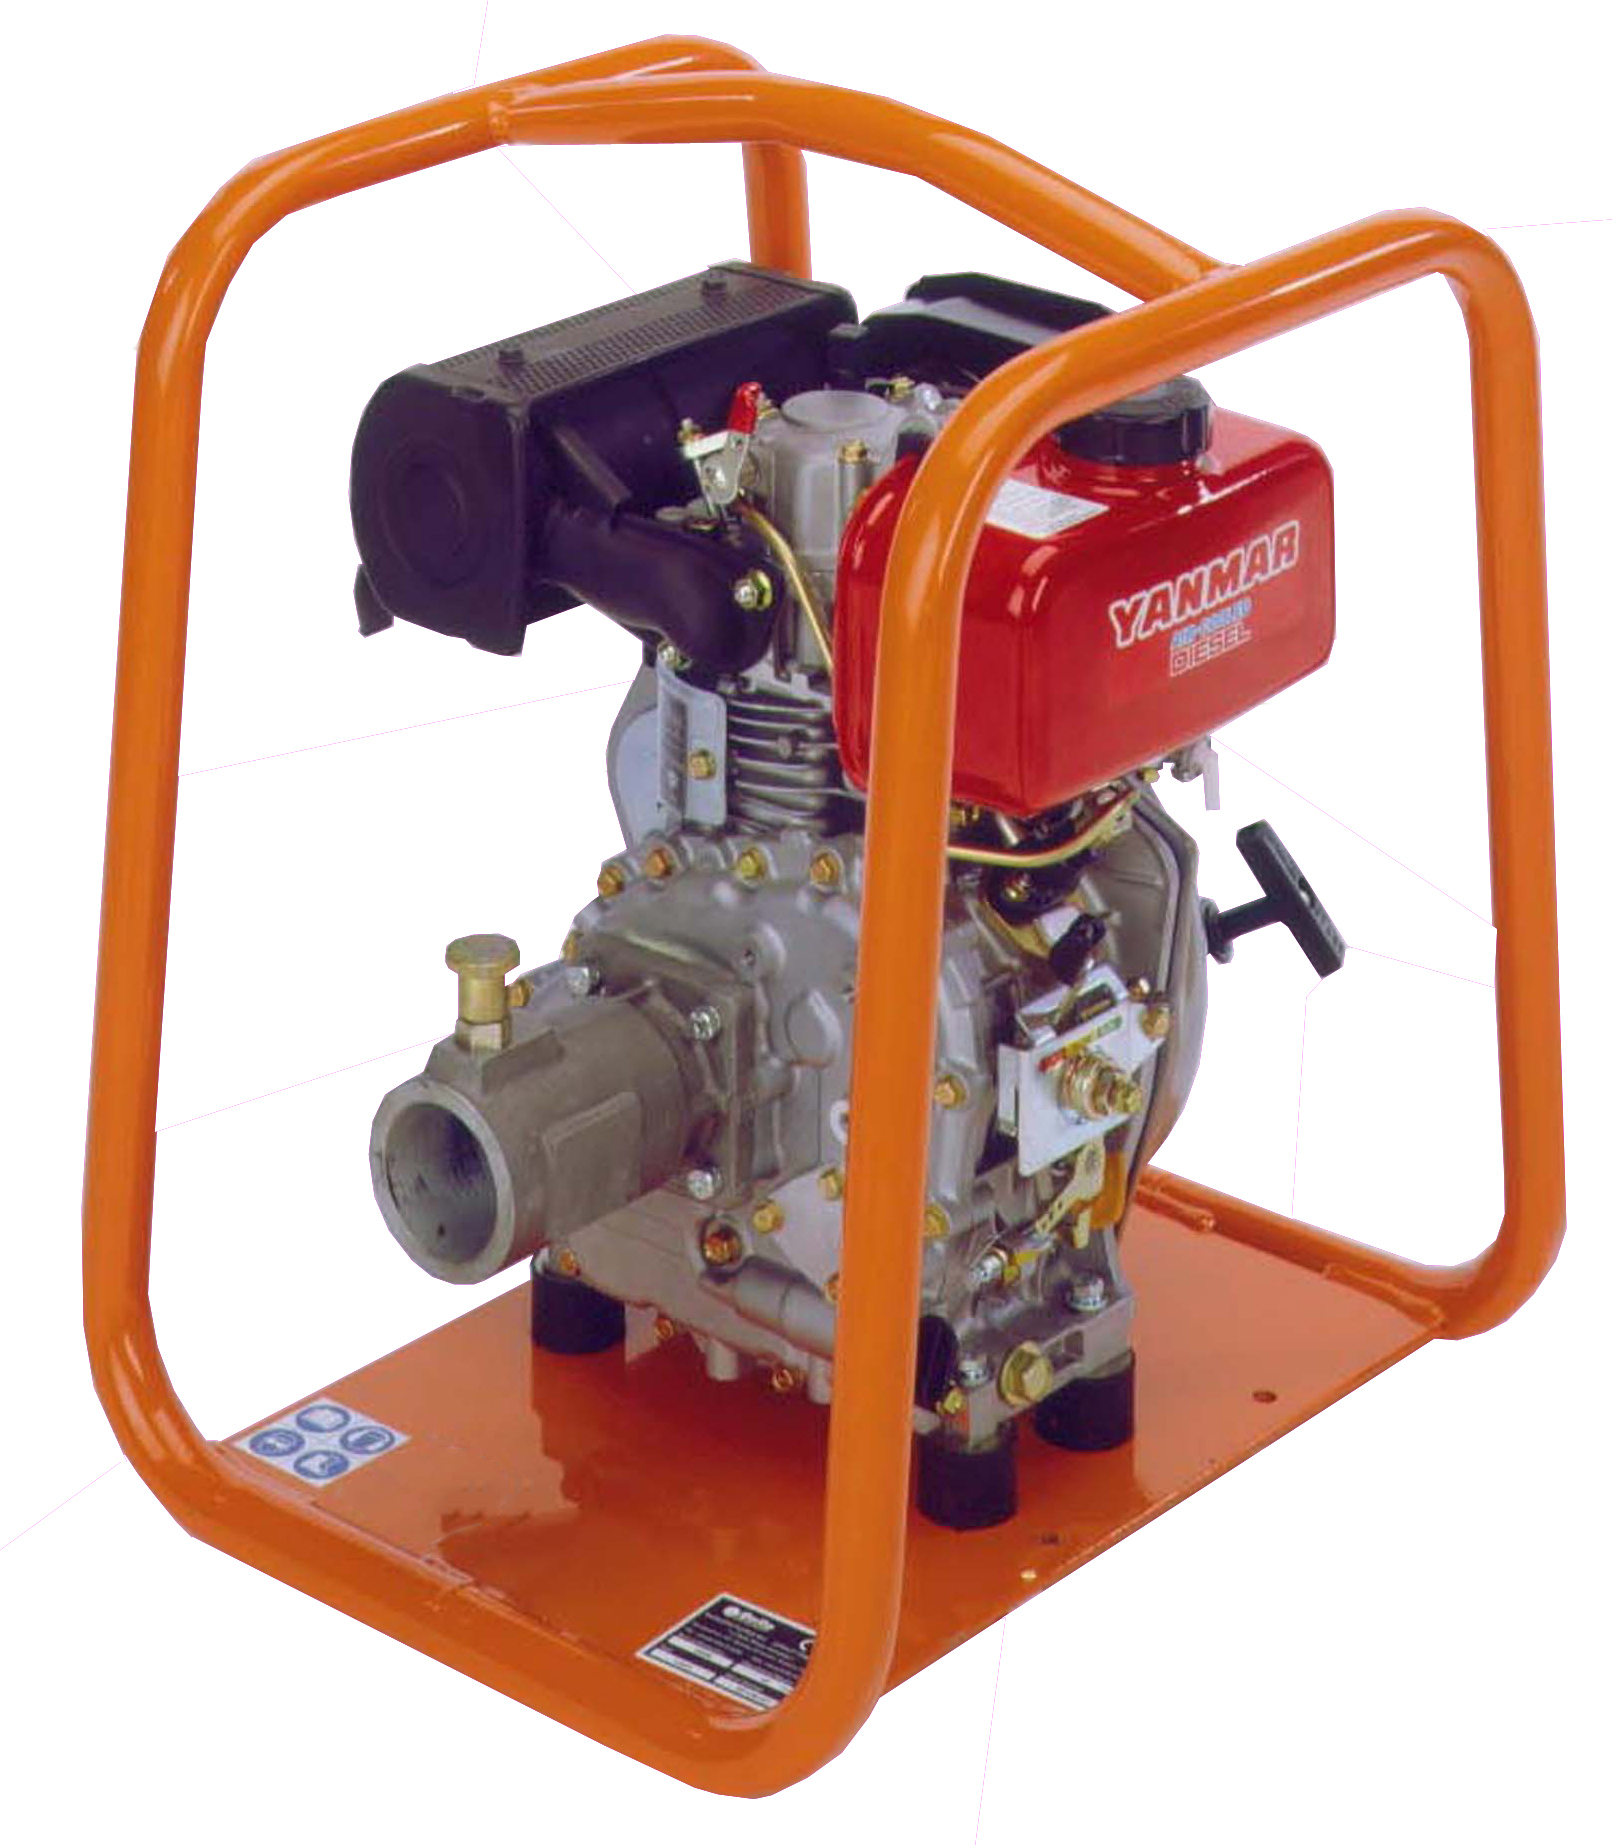 Altrad Belle BGA Power Unit & Pump - Yanmar Diesel